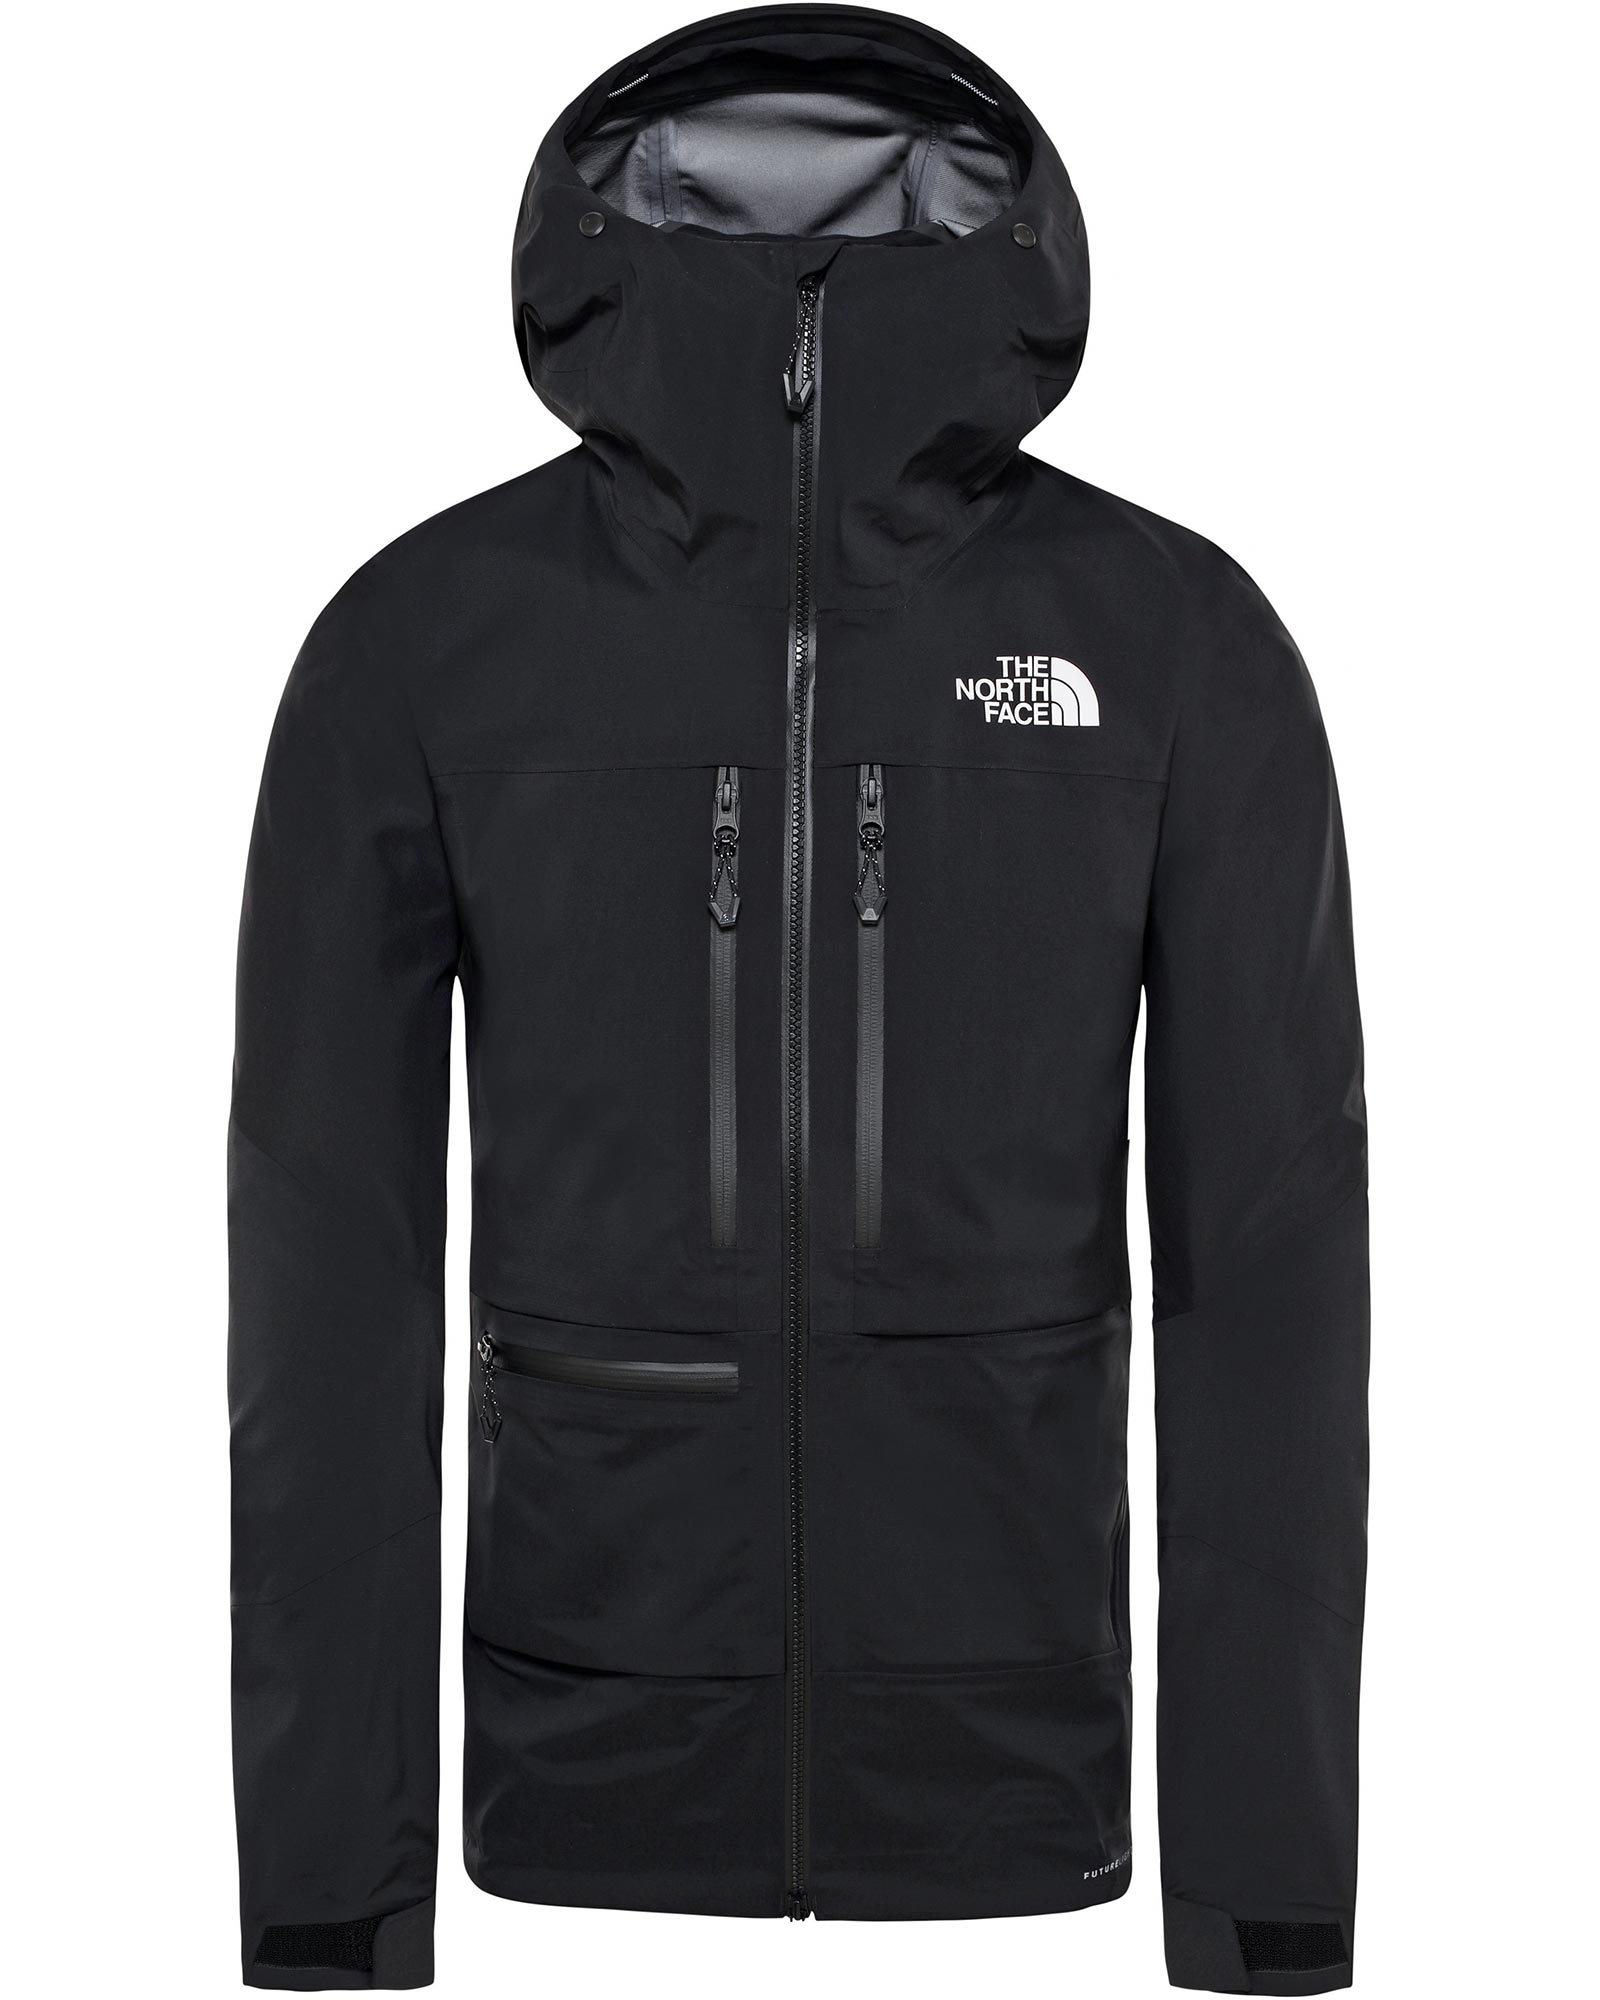 The North Face Men's Summit Series L5 FUTURELIGHT Jacket 0